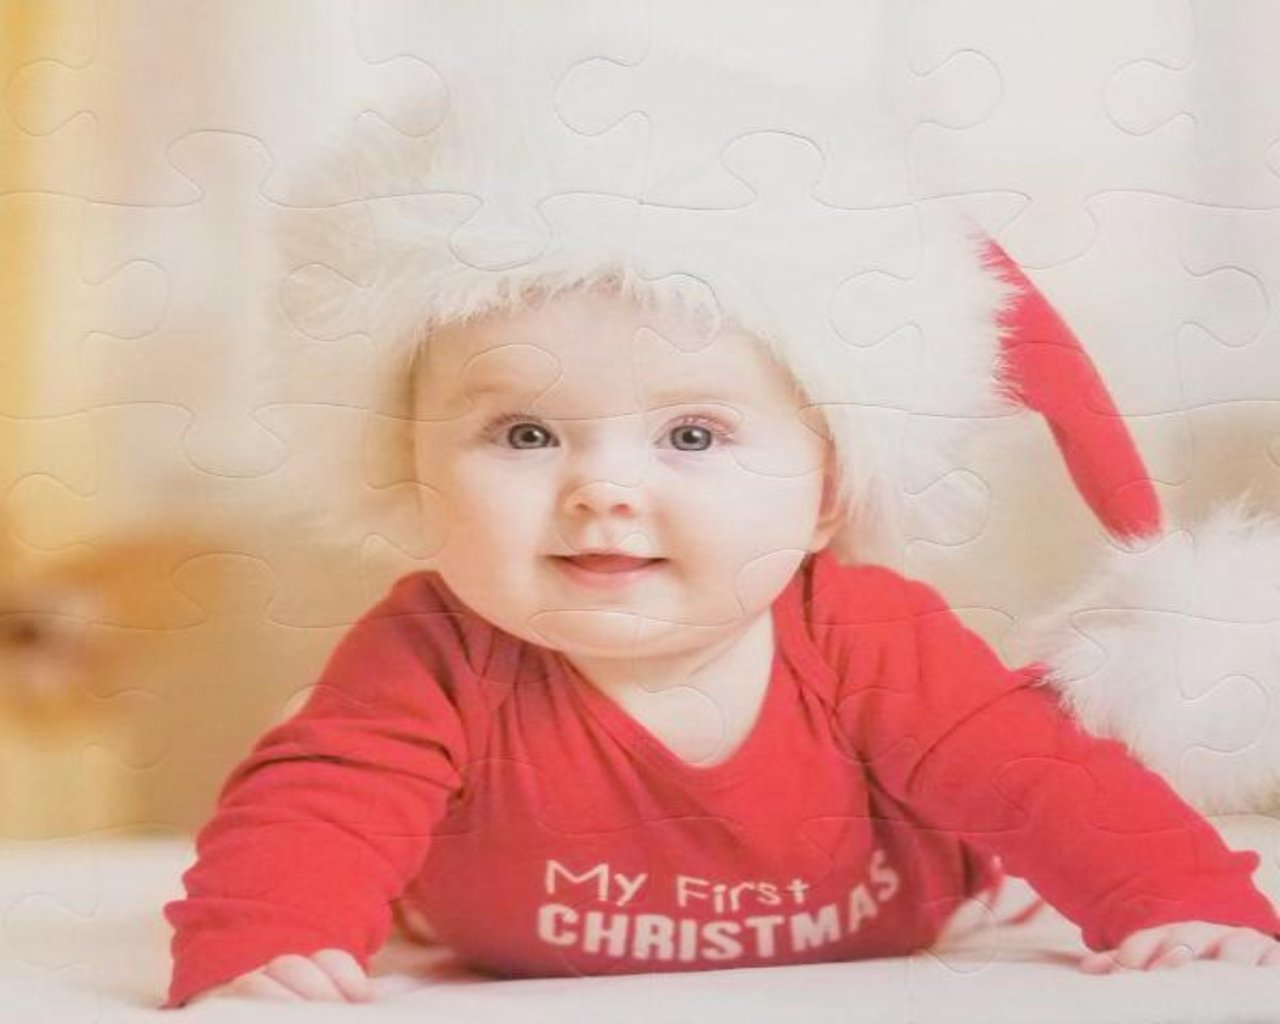 personalized photo jigsaw puzzle baby wearing santa hat - The Missing Piece Puzzle Company